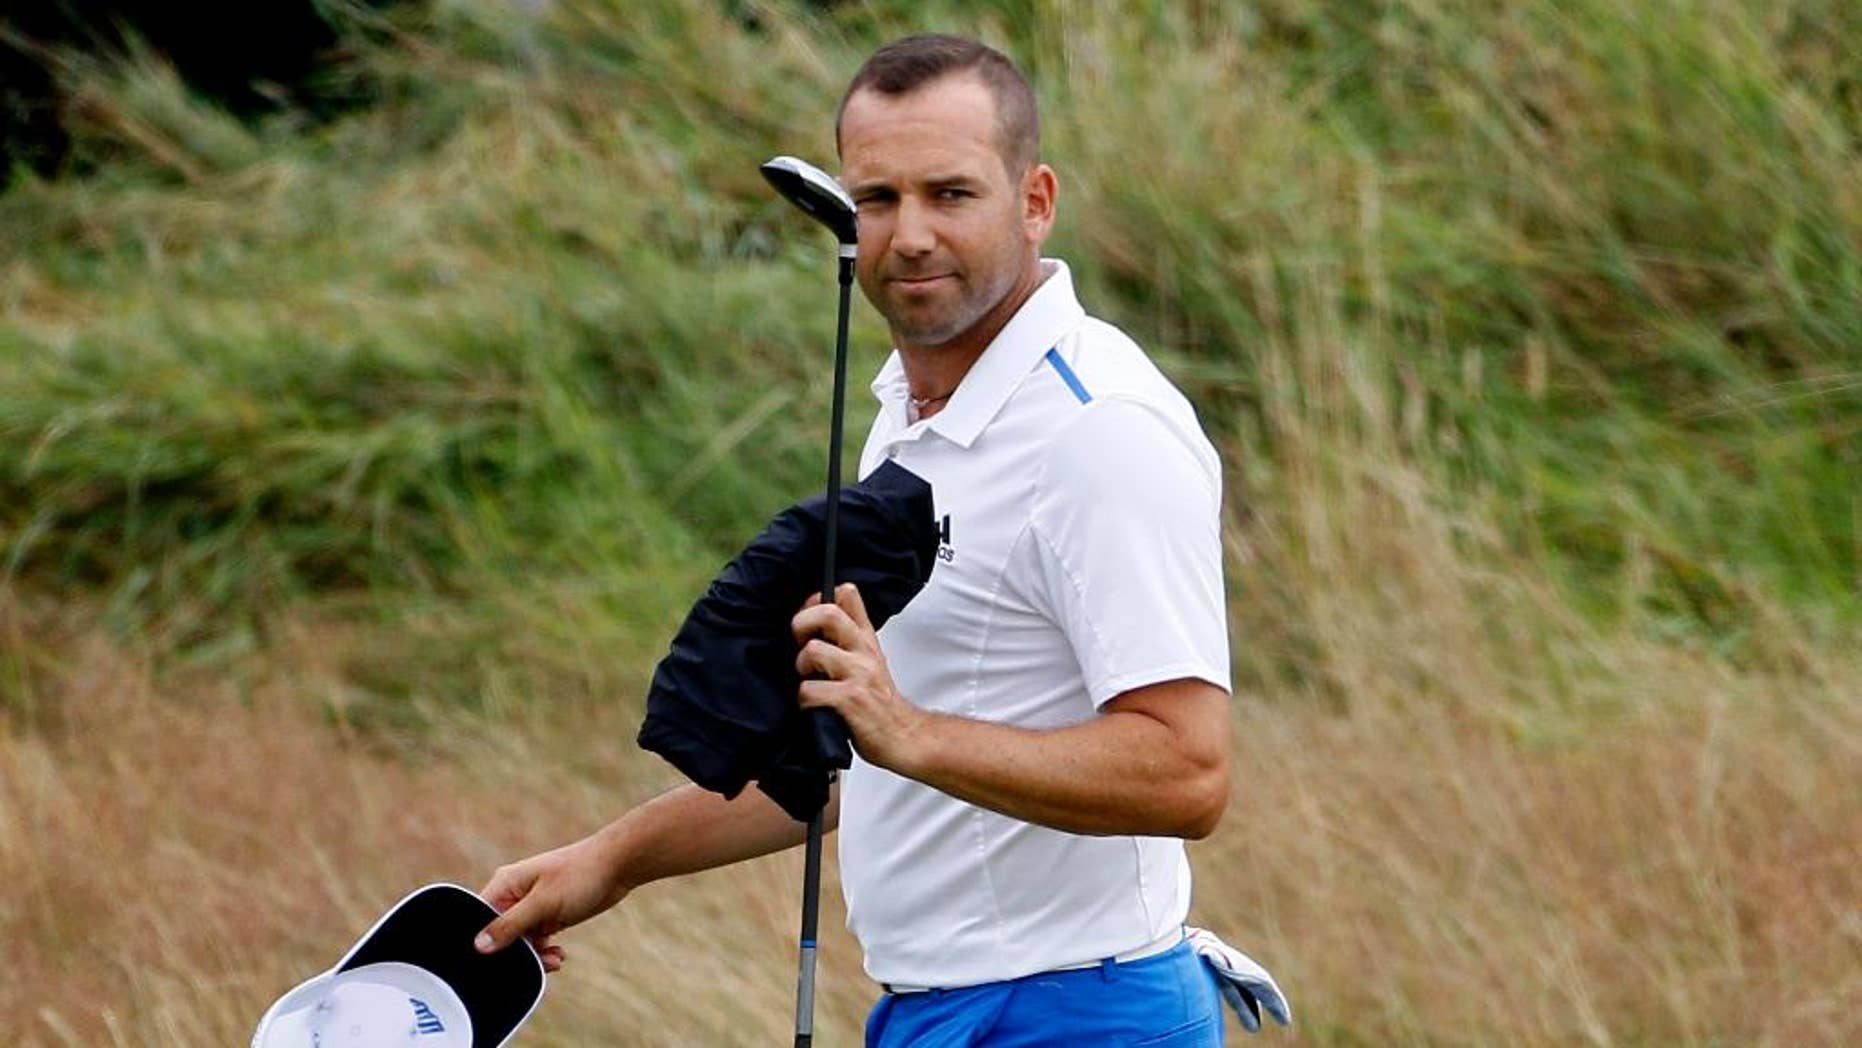 Sergio Garcia of Spain walks along the 18th fairway during the third day of the British Open Golf championship at the Royal Liverpool golf club, Hoylake, England, Saturday July 19, 2014. (AP Photo/Peter Morrison)